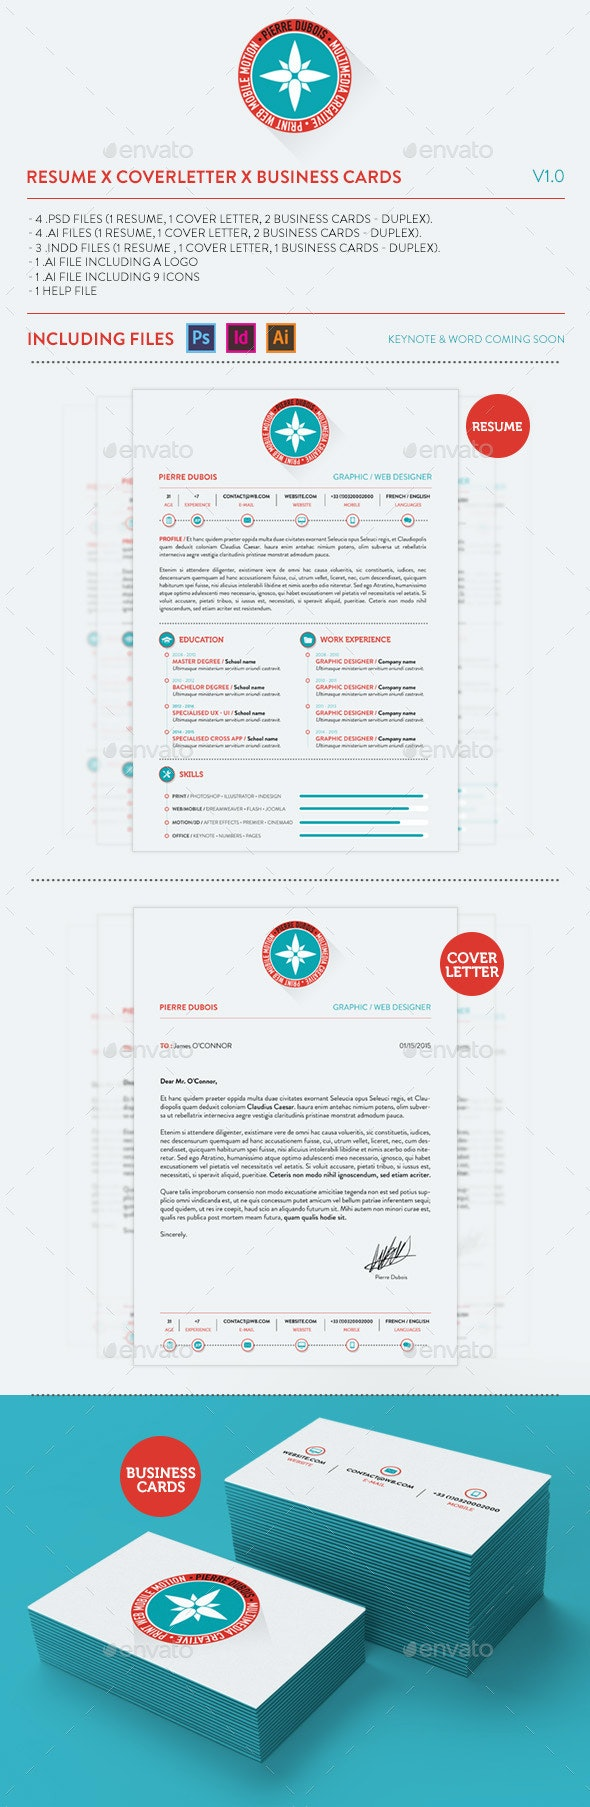 Resume X Coverletter X Business Cards By Mockupbank Graphicriver